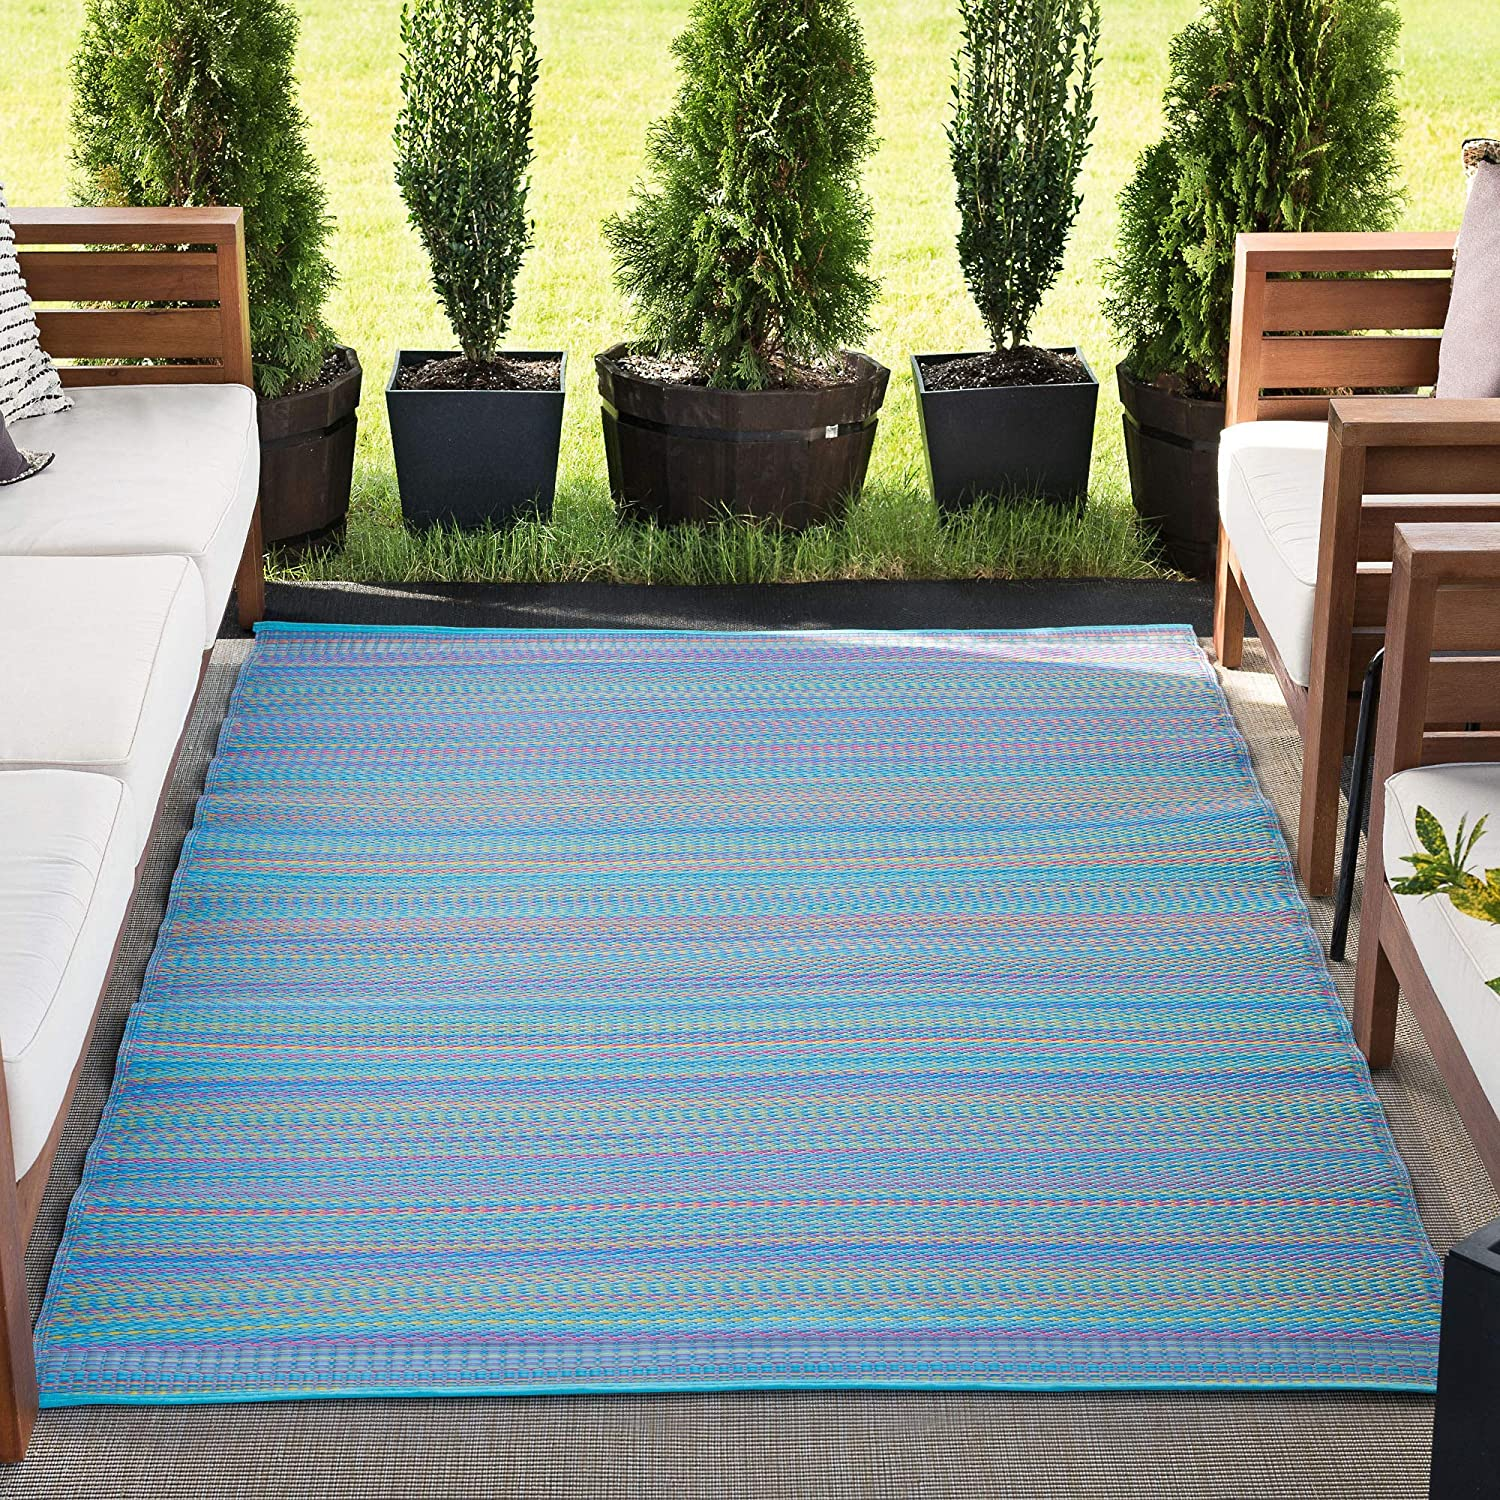 gift Pembrokepines Reversible Plastic Lowest price challenge Straw Large Rug Patio 9 Outdoor